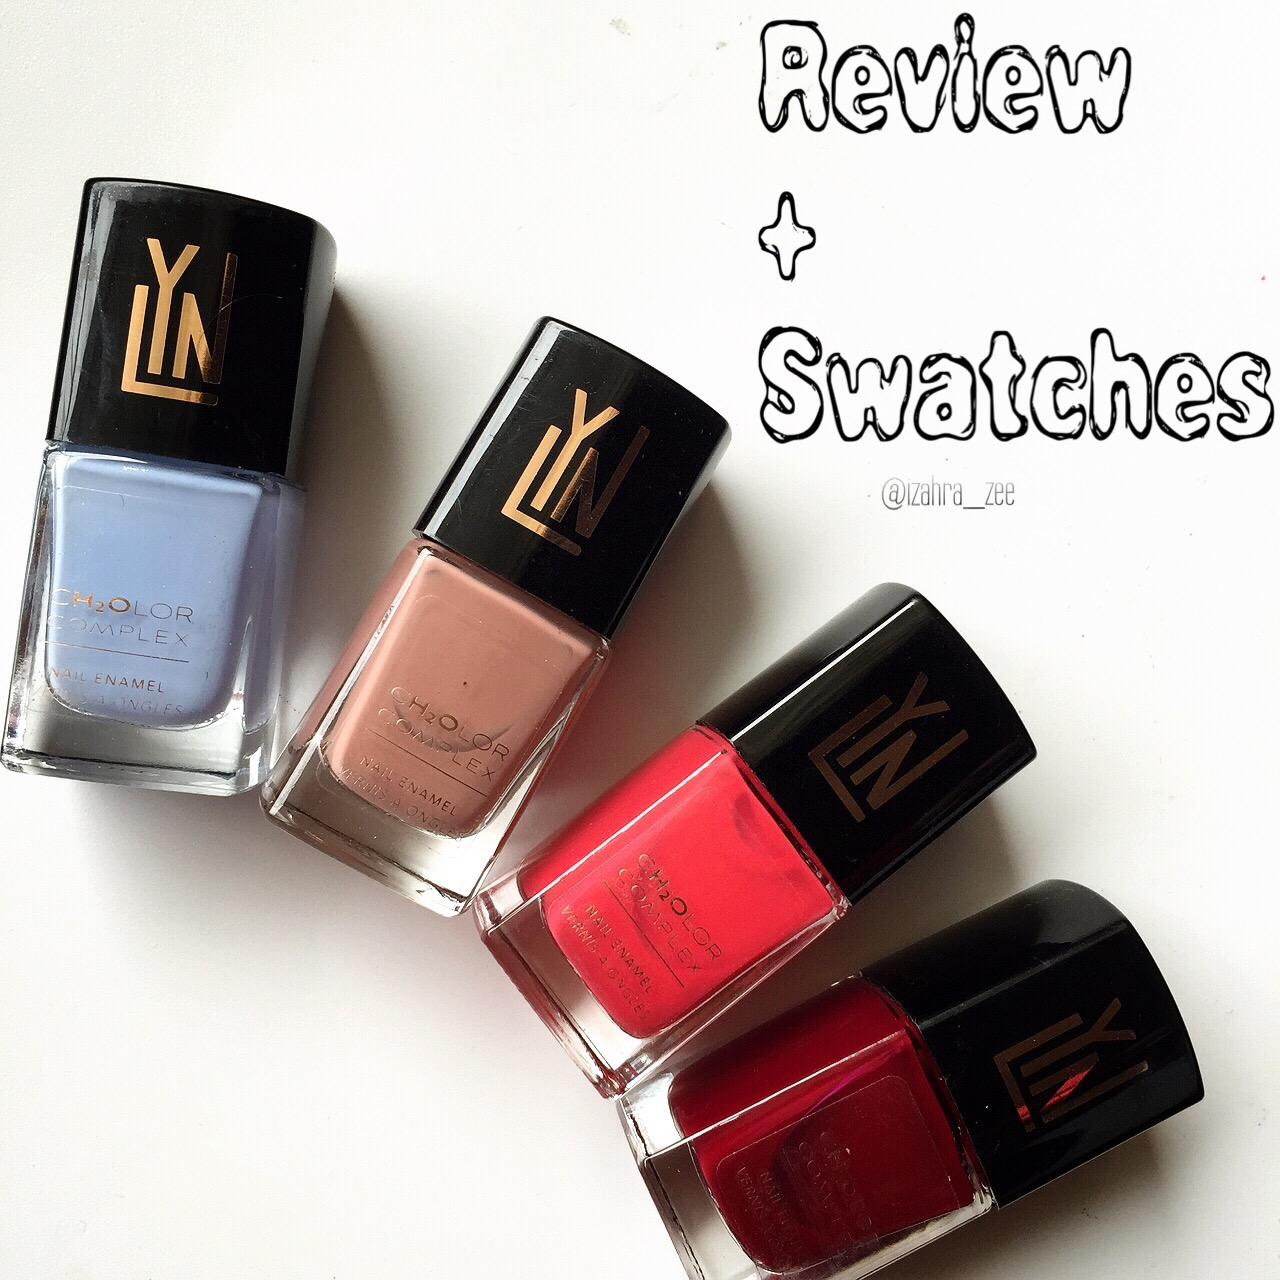 Love Your Nails : Review – Swatches | ✨ Glam ♚ Zeee ✨